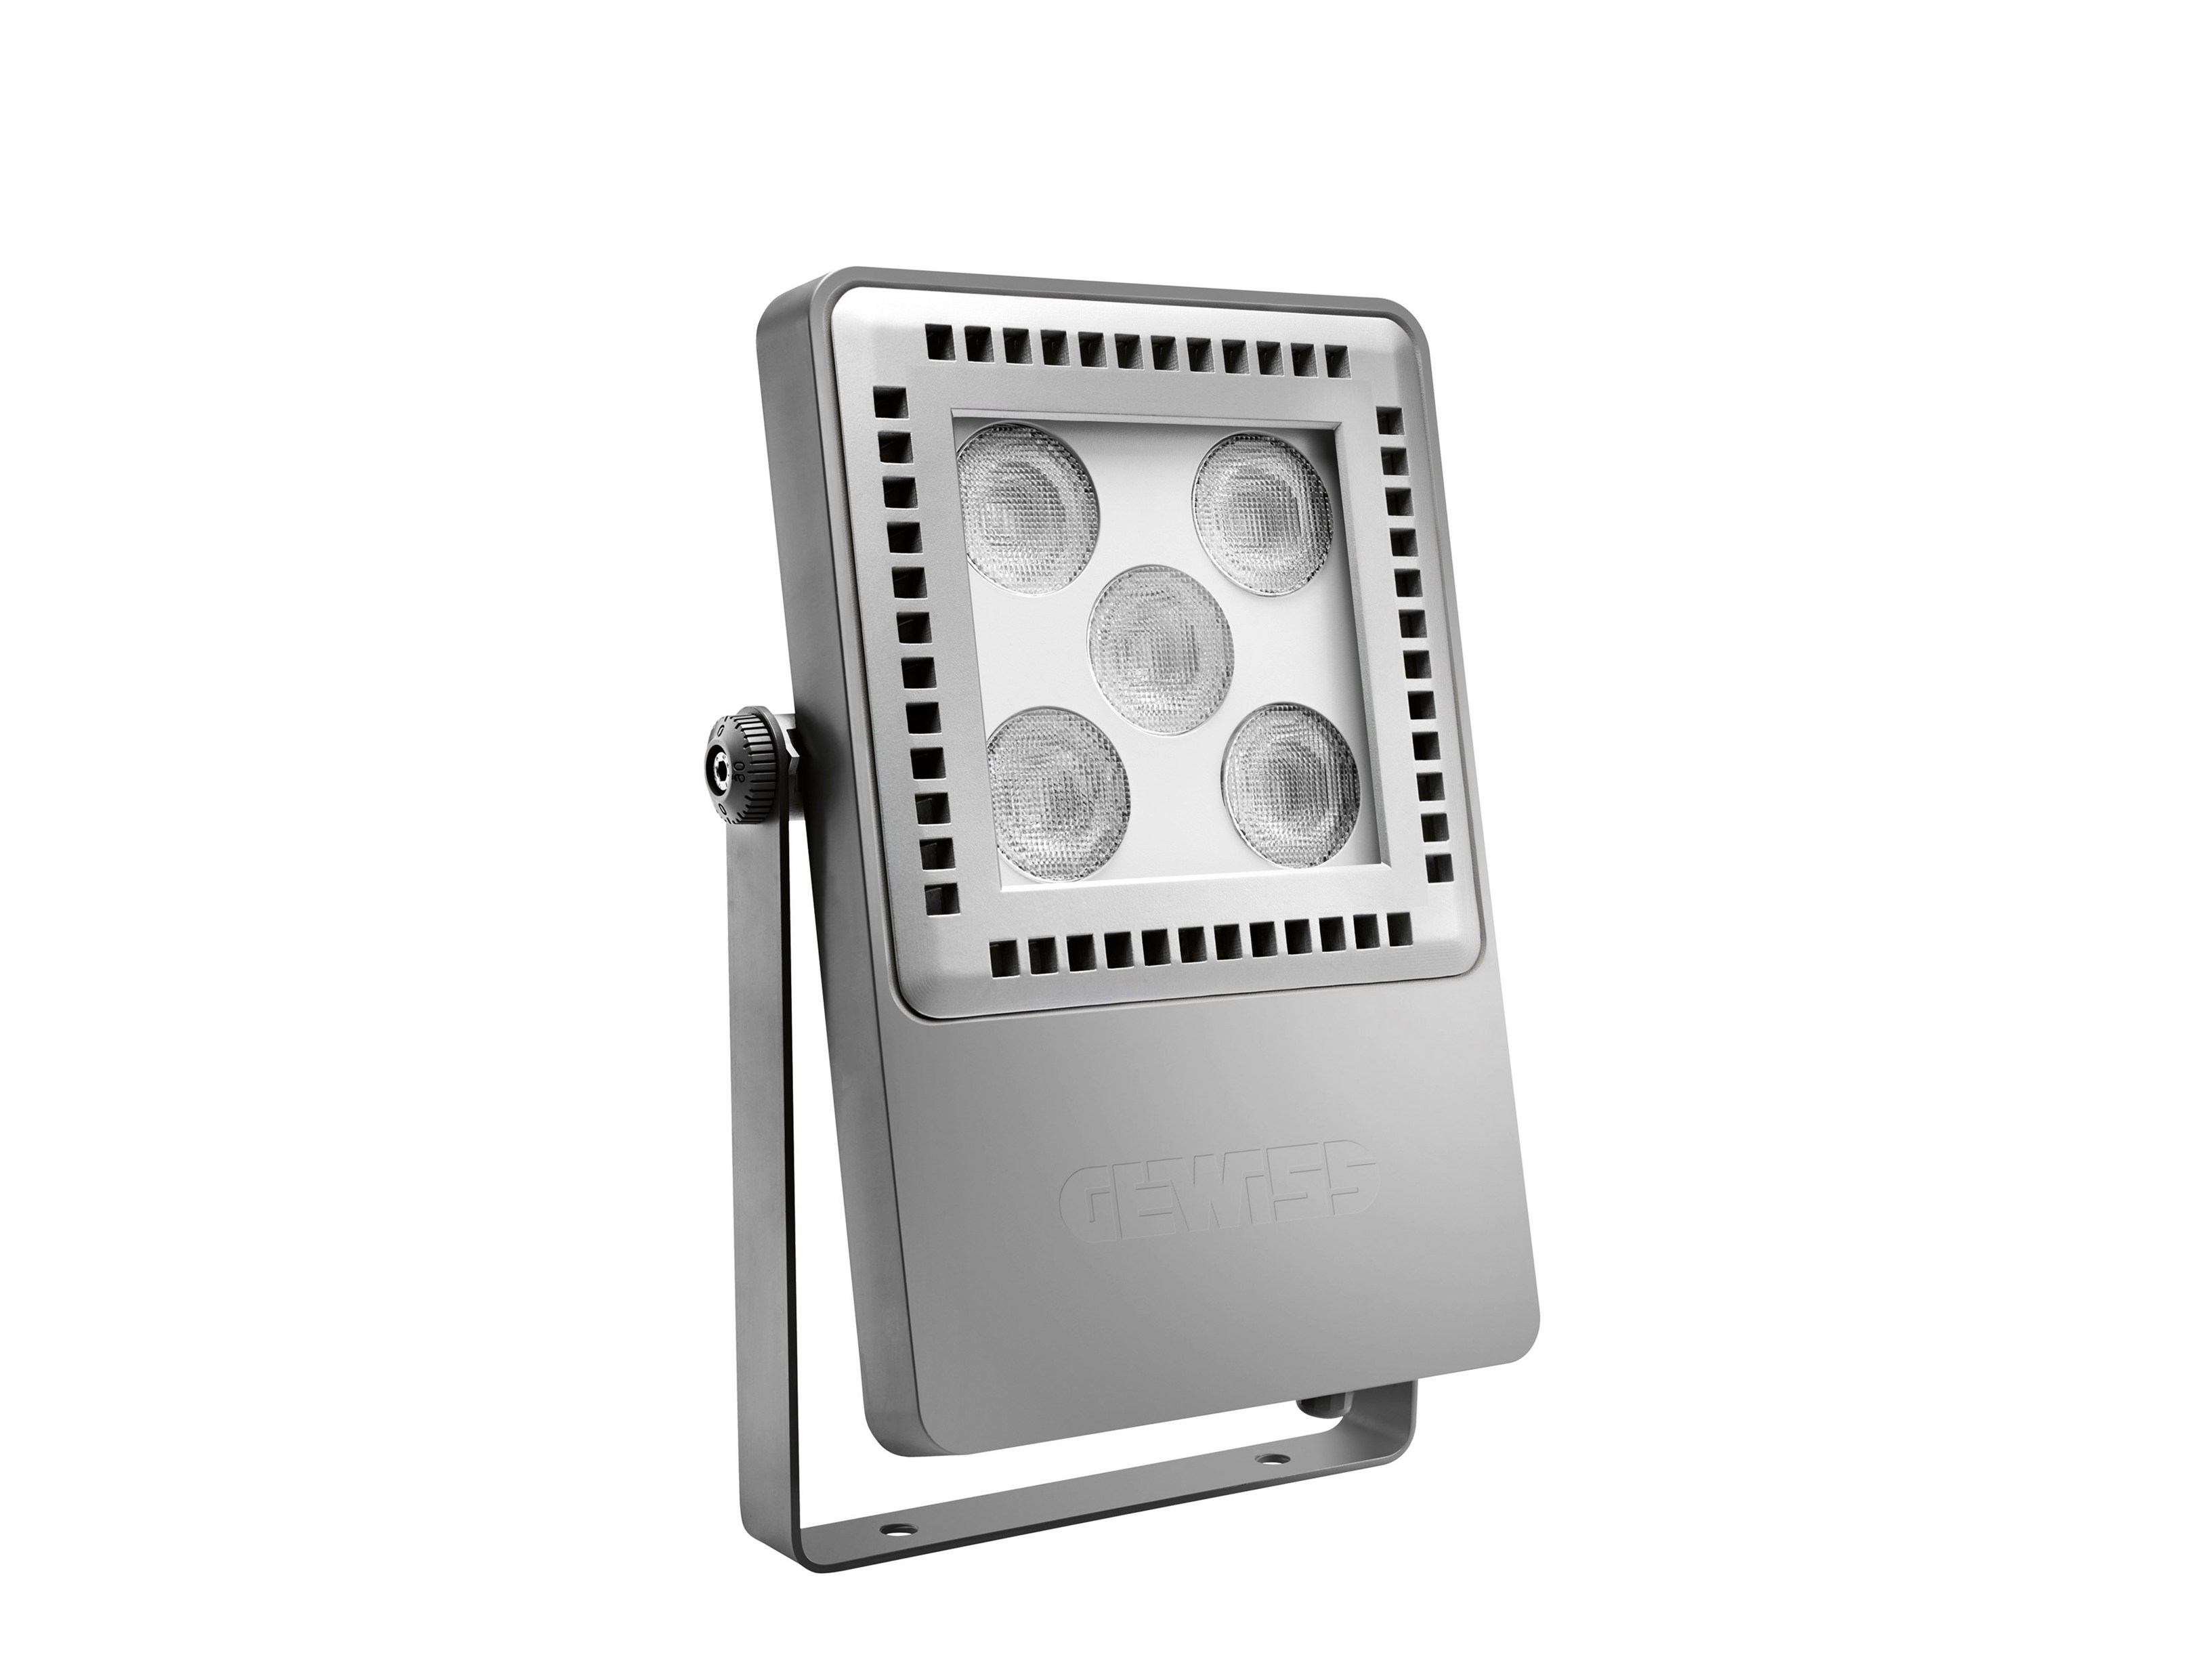 Eclairage Led Batiment Industriel Projecteur Industriel Led Smart 4 Fl By Gewiss